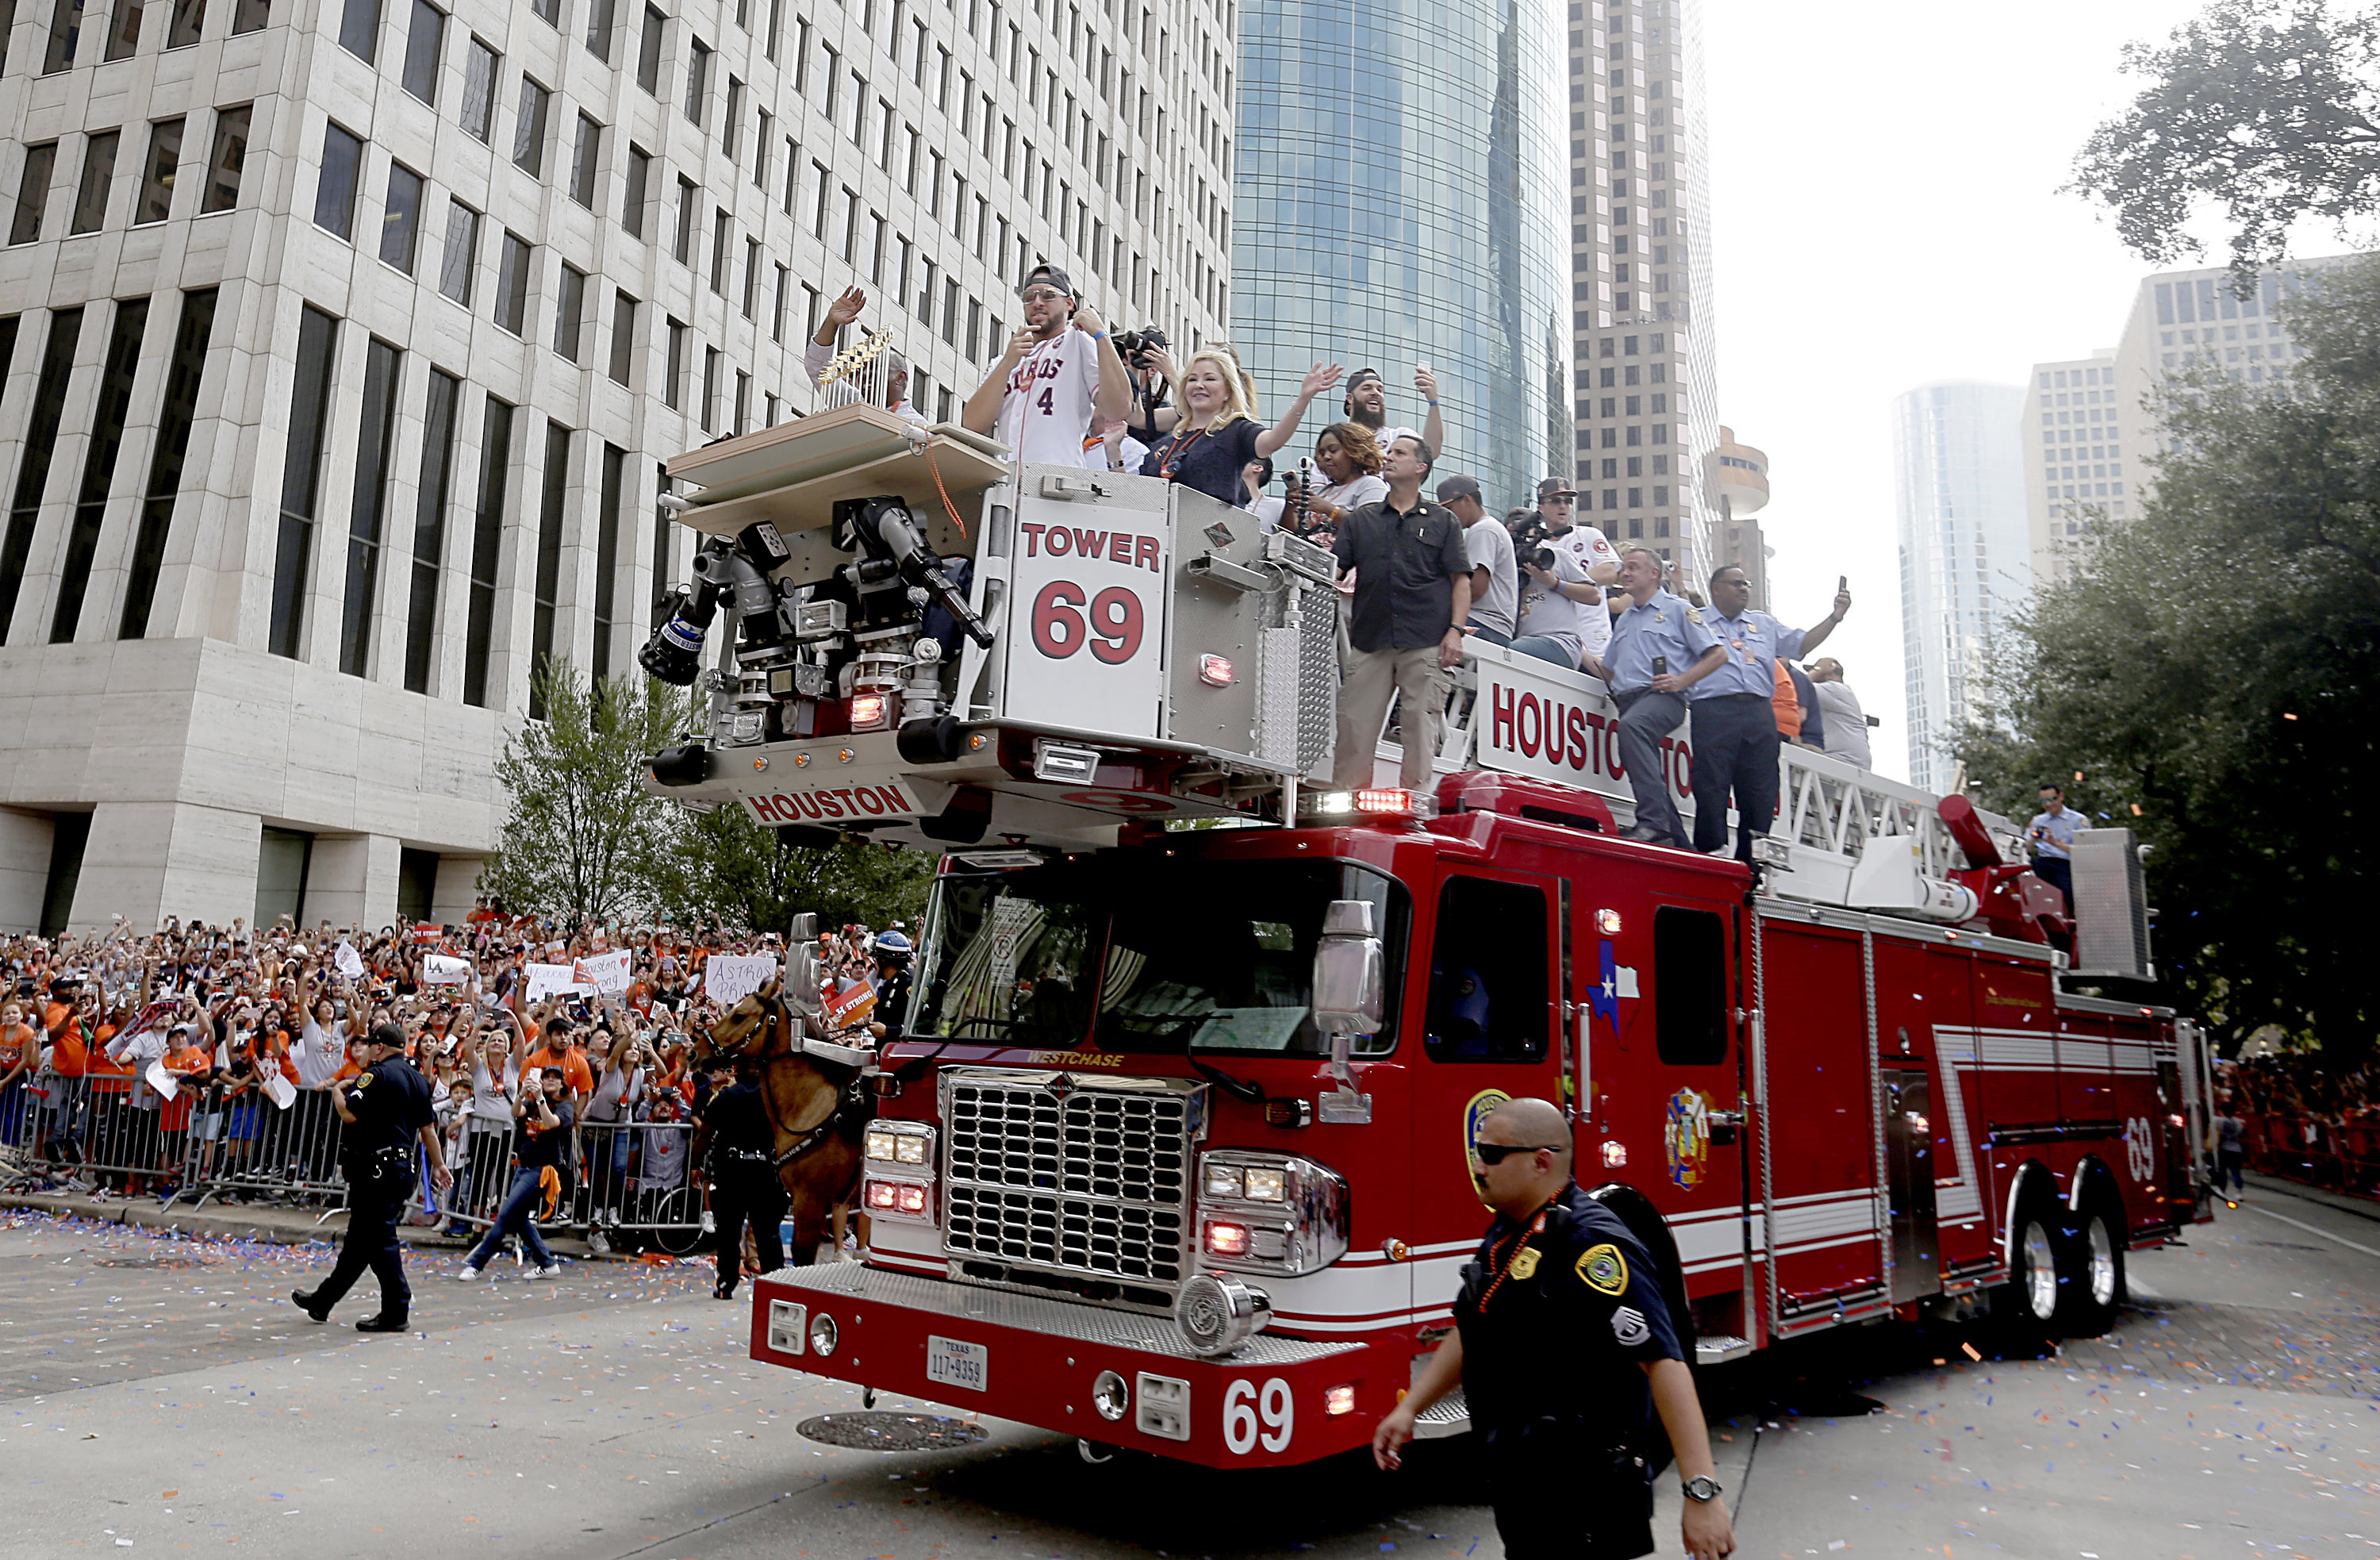 Nov 3, 2017; Houston, TX, USA; Houston Astros center fielder George Springer (4) leads the way on a fire engine truck during the World Series championship parade and rally for the Houston Astros in downtown on Smith St. Mandatory Credit: Thomas B. Shea-USA TODAY Sports